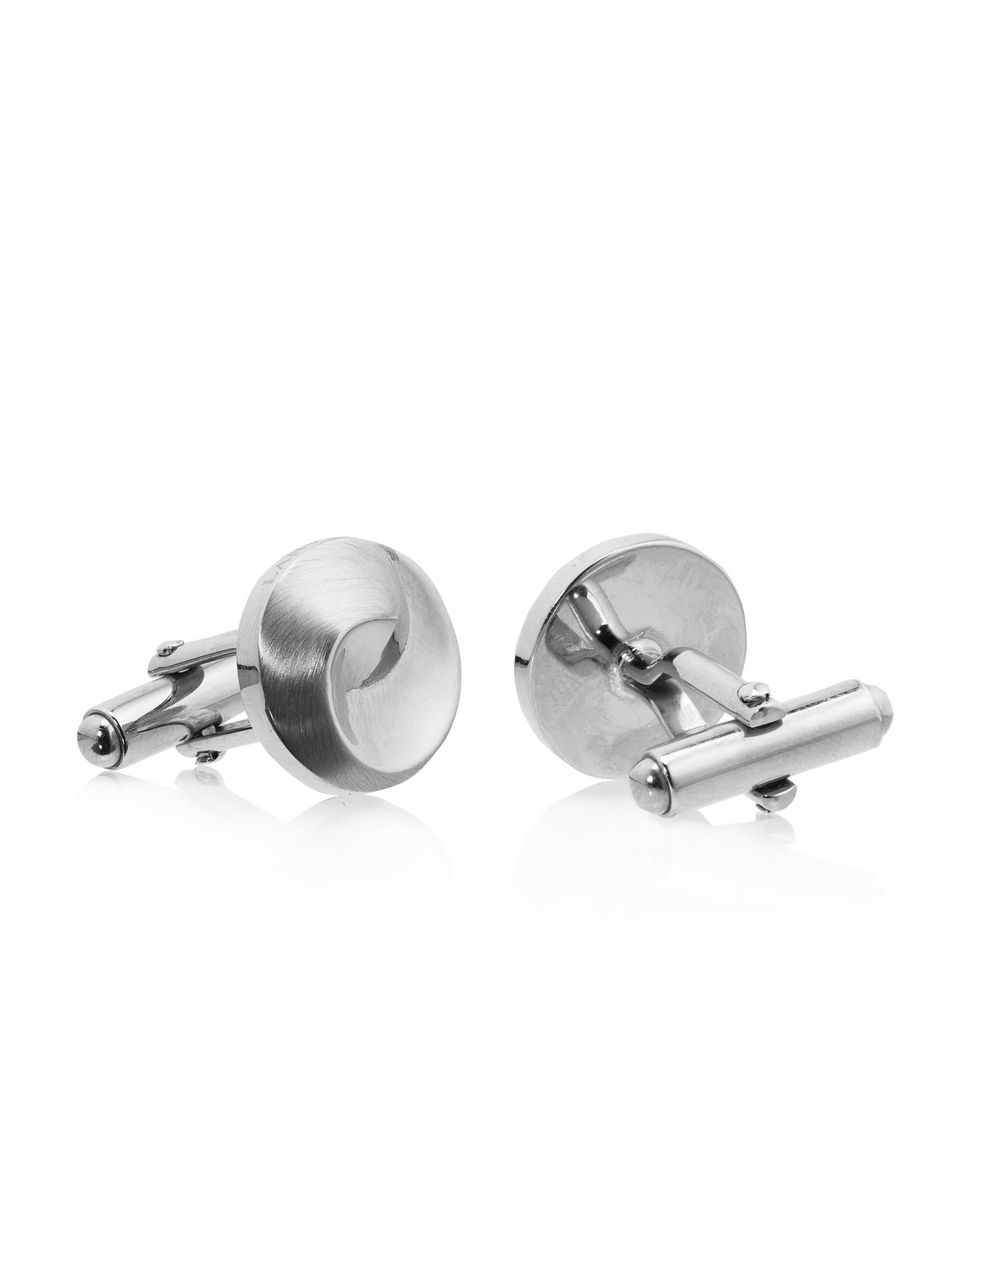 Silver-plated metal cuff links - Lanvin